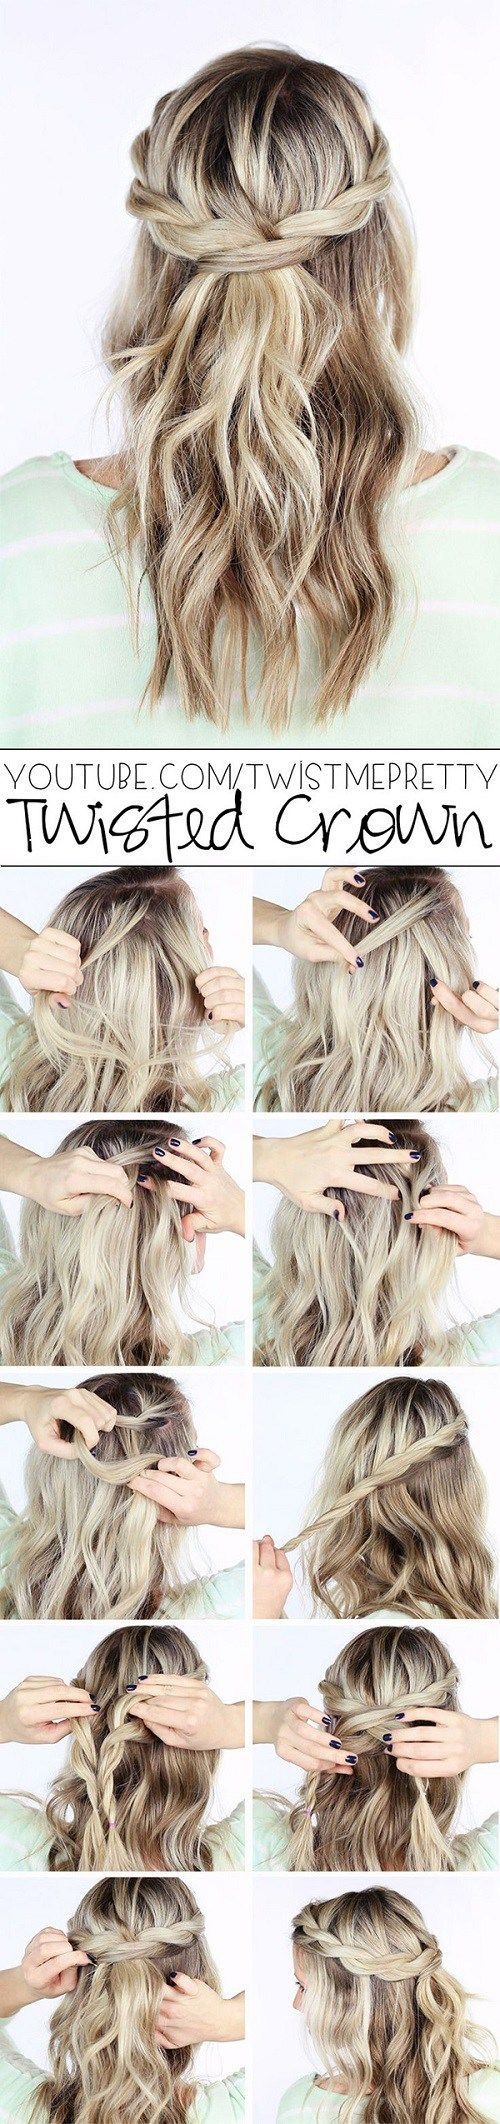 Hair Tutorials for Long Hair and Medium Length Hair http://rnbjunkiex.tumblr.com/post/157432297177/more